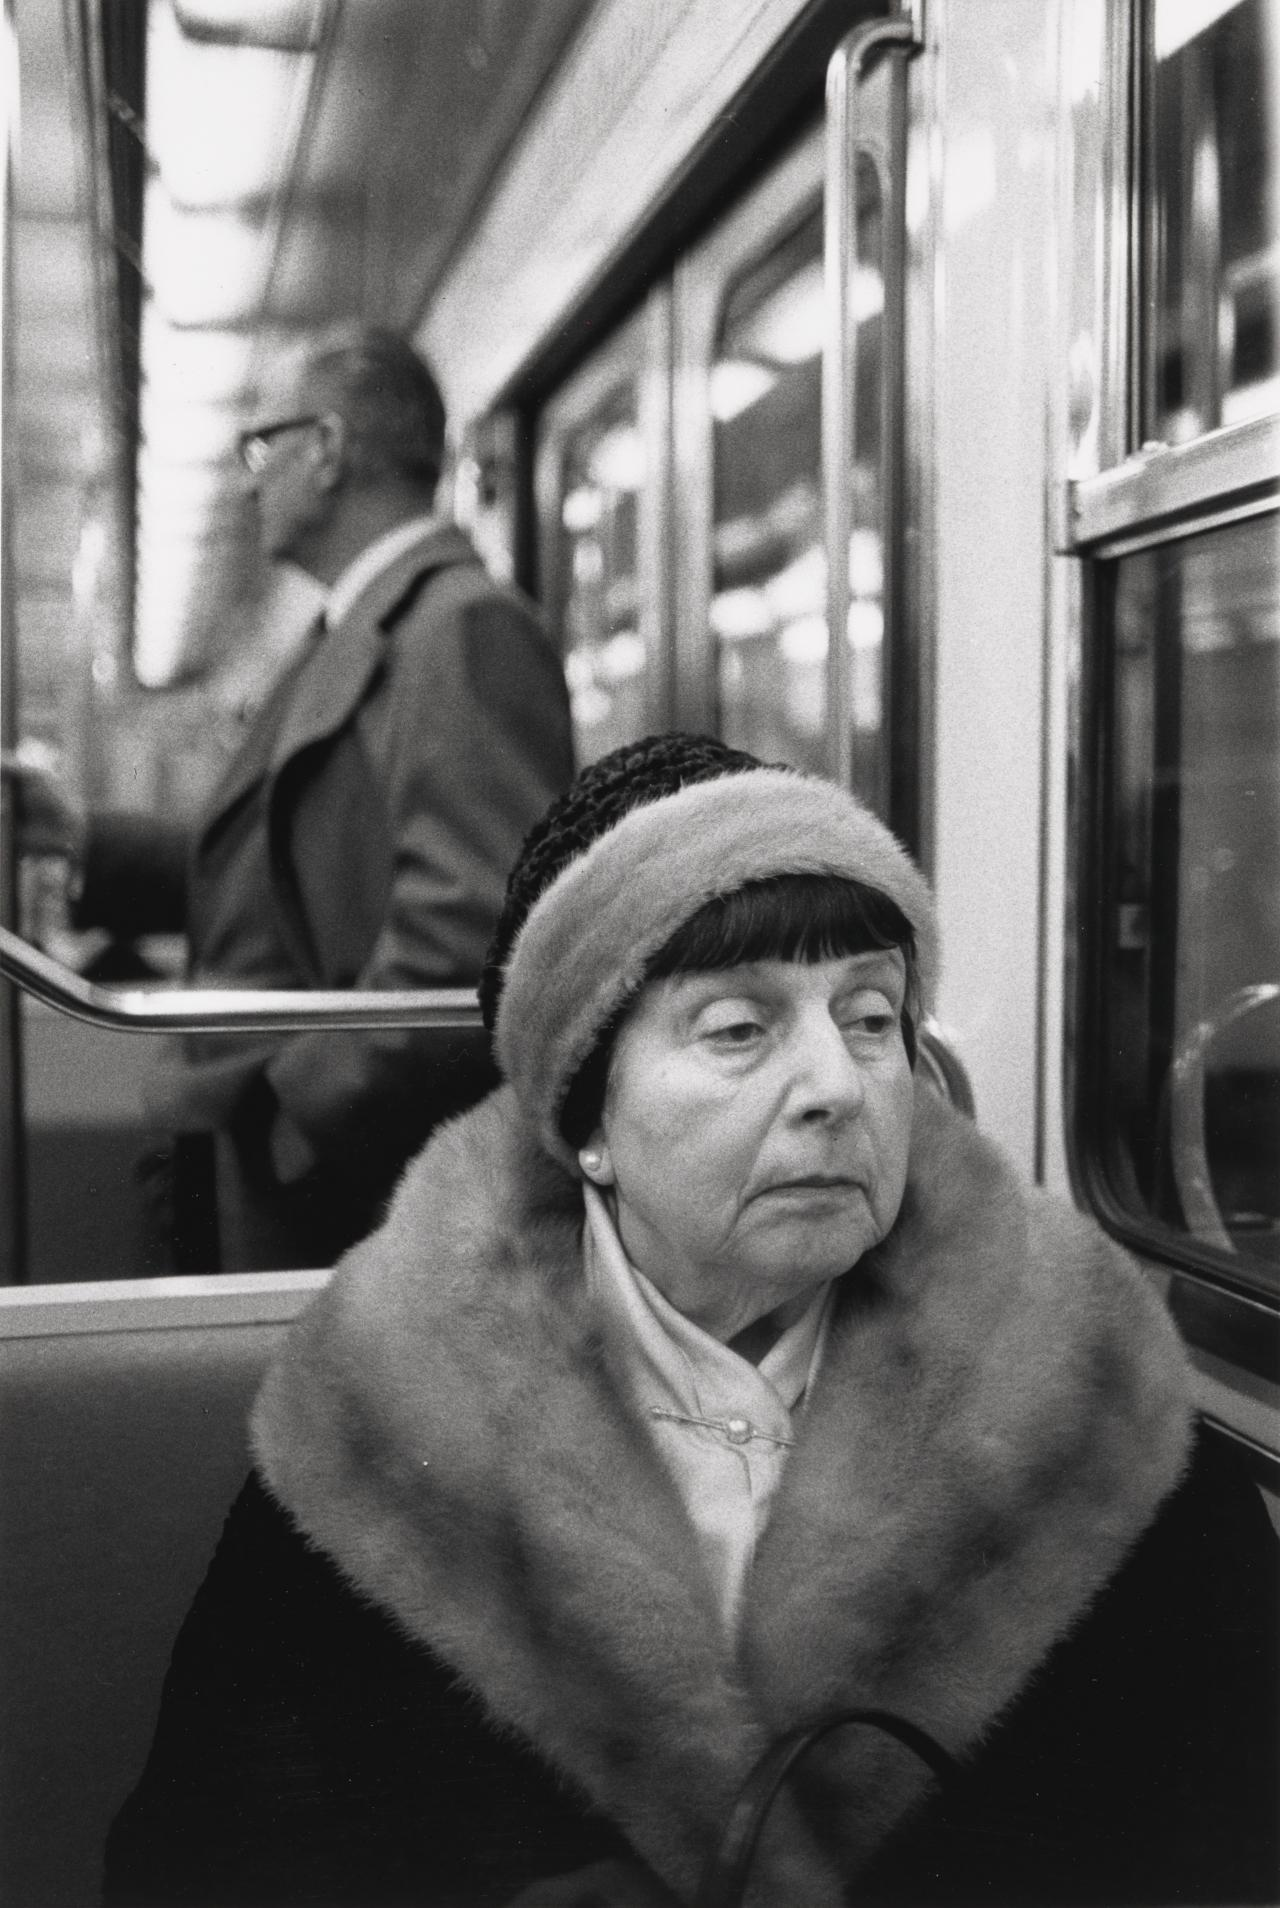 On the Metro, Paris